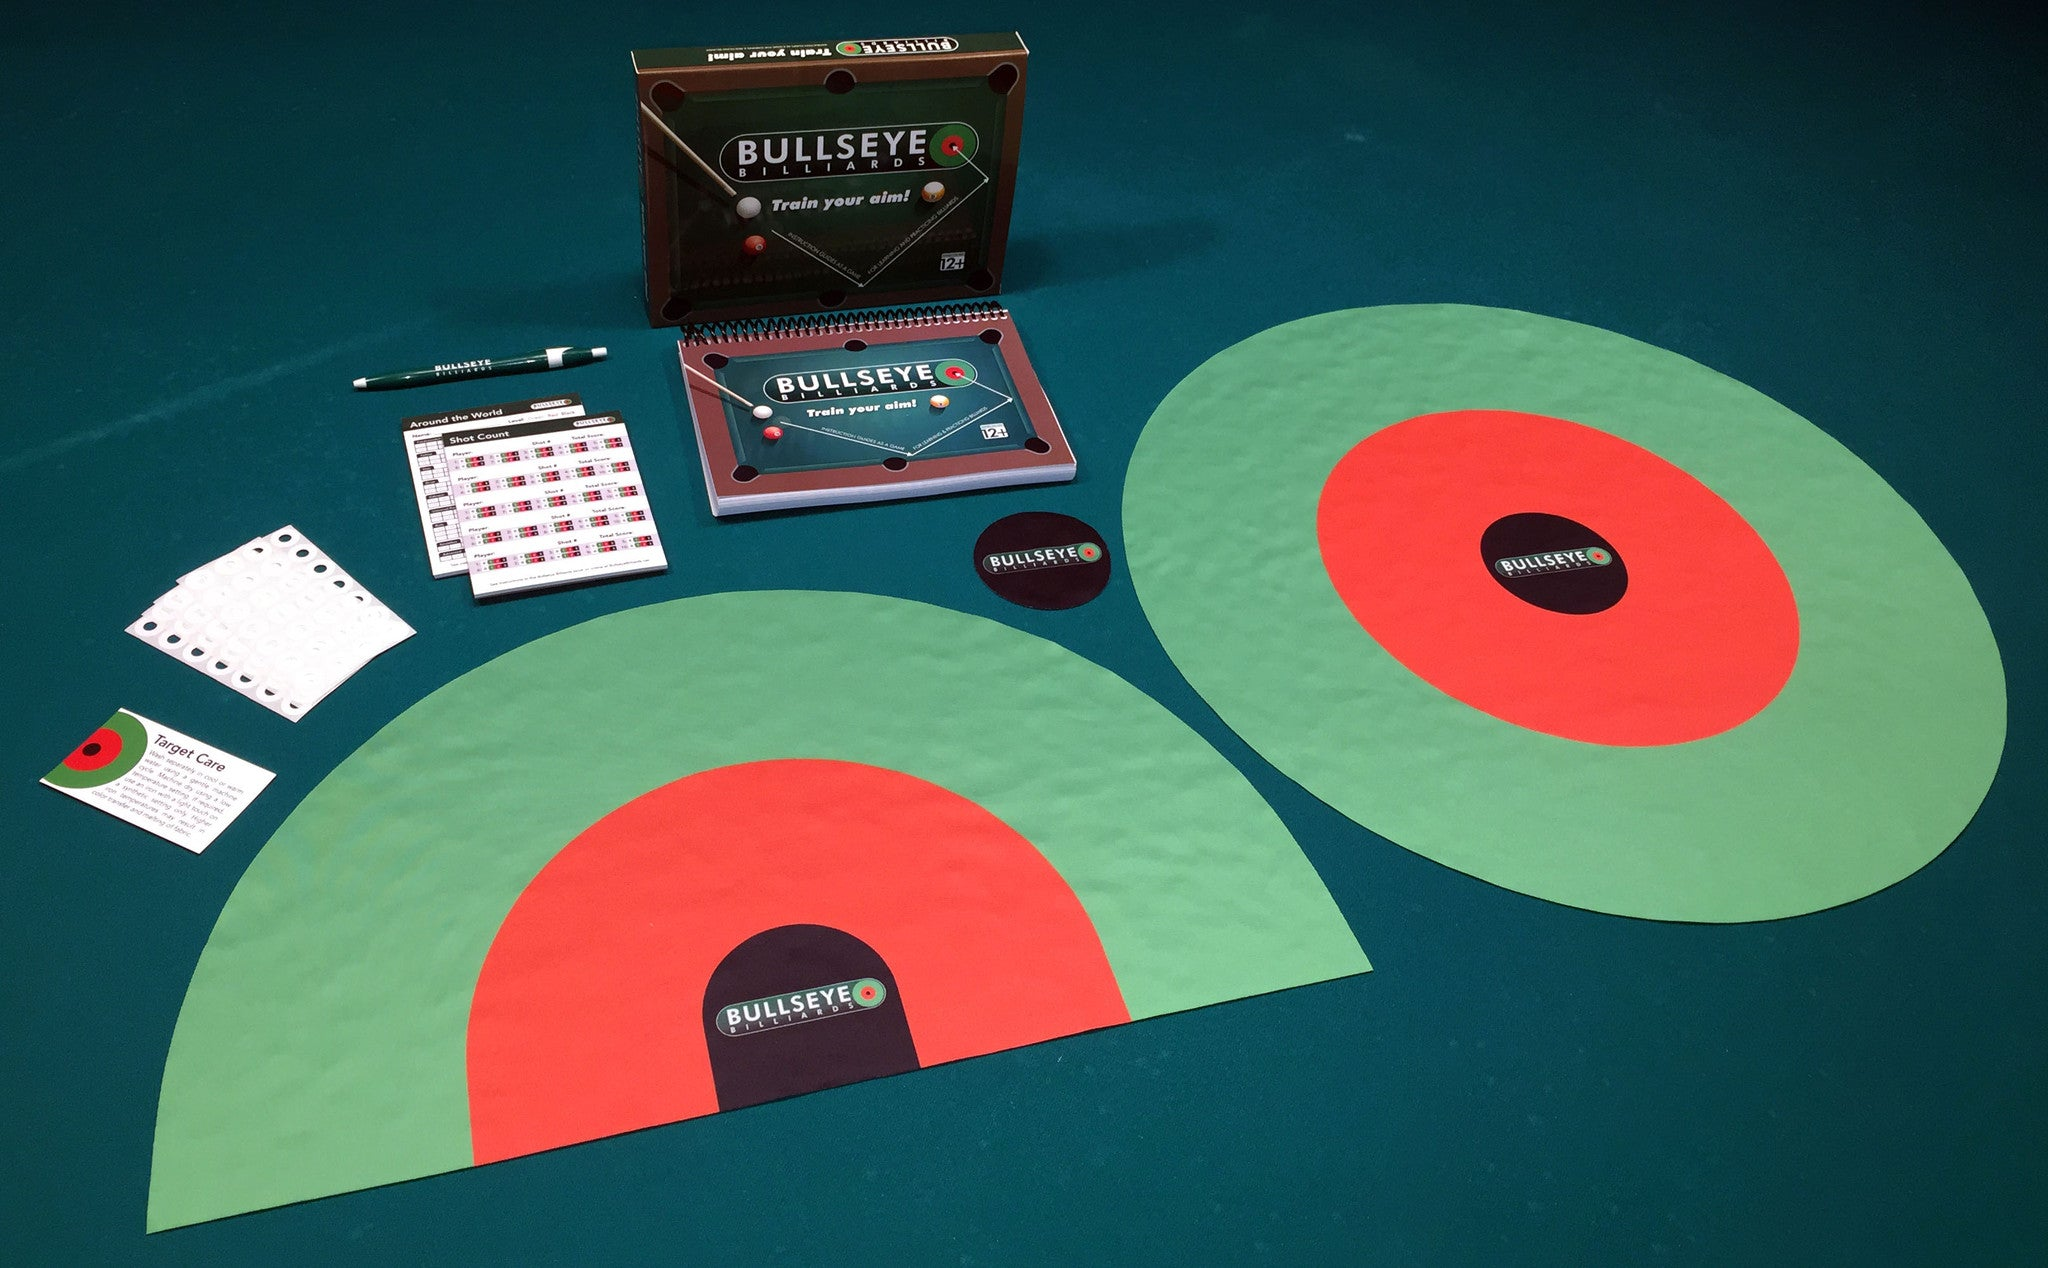 Bullseye Billiards